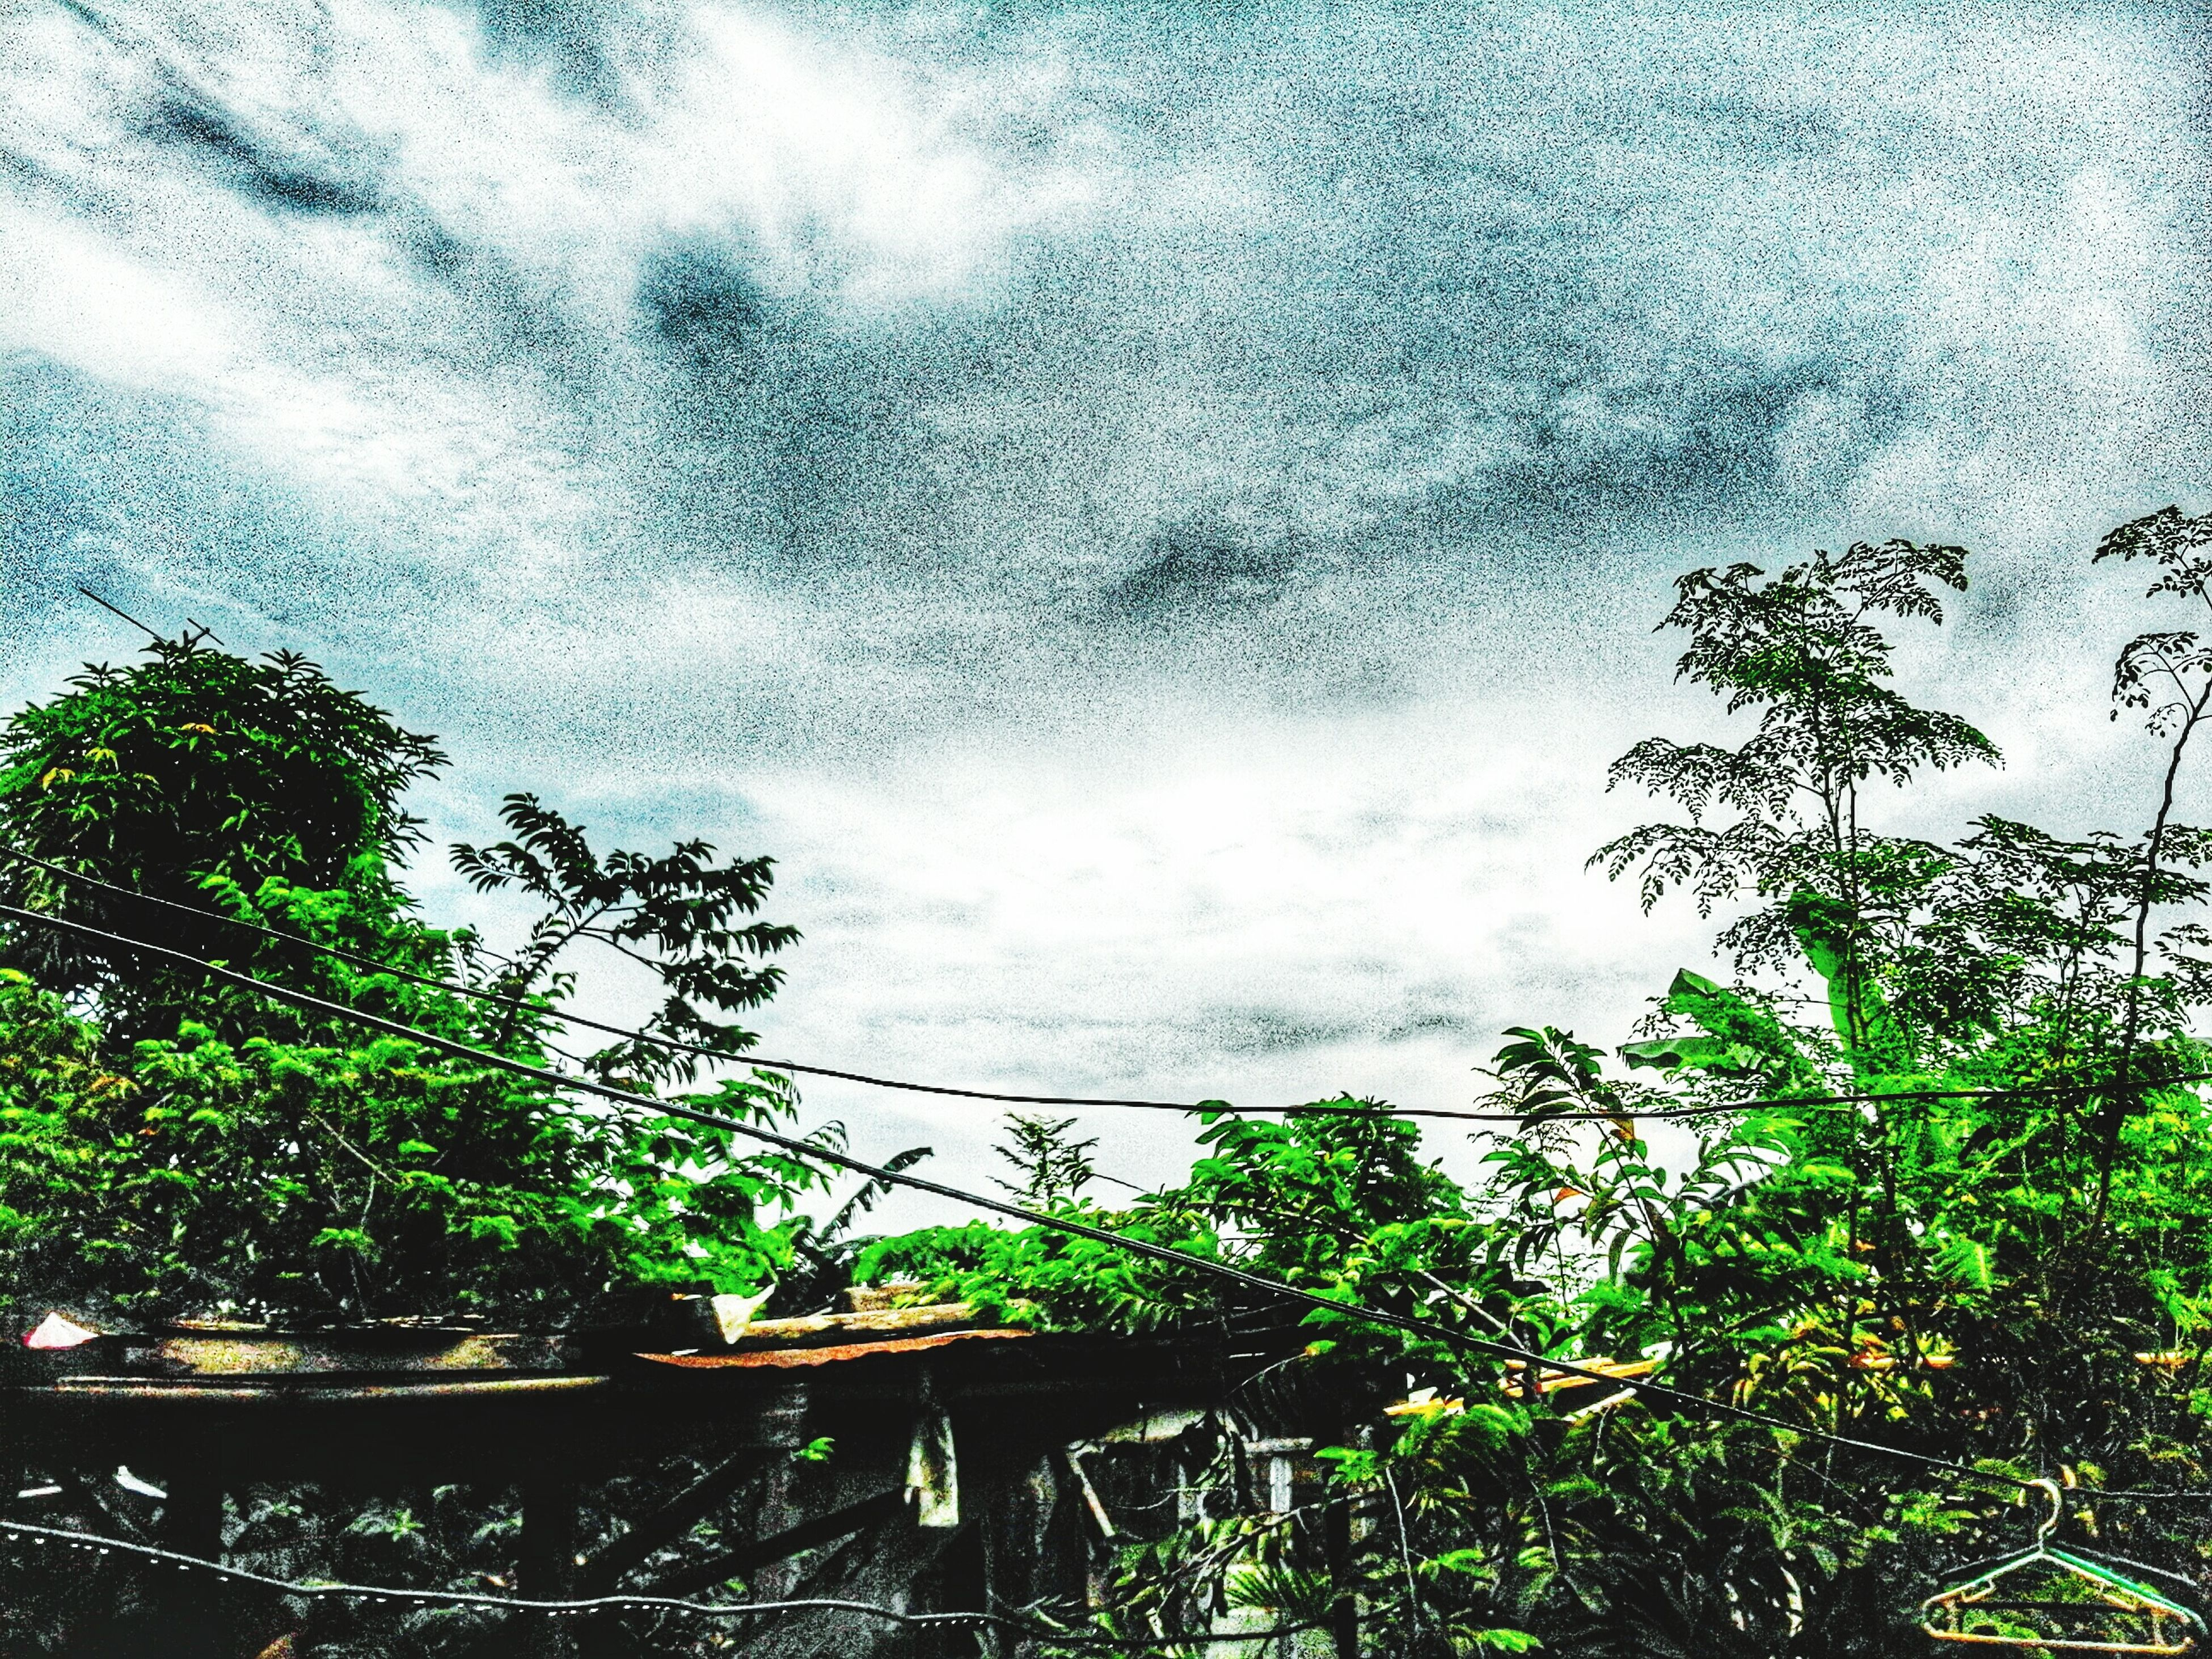 sky, cloud - sky, tree, cloudy, weather, nature, growth, cloud, water, window, glass - material, day, low angle view, plant, beauty in nature, built structure, overcast, no people, outdoors, railing